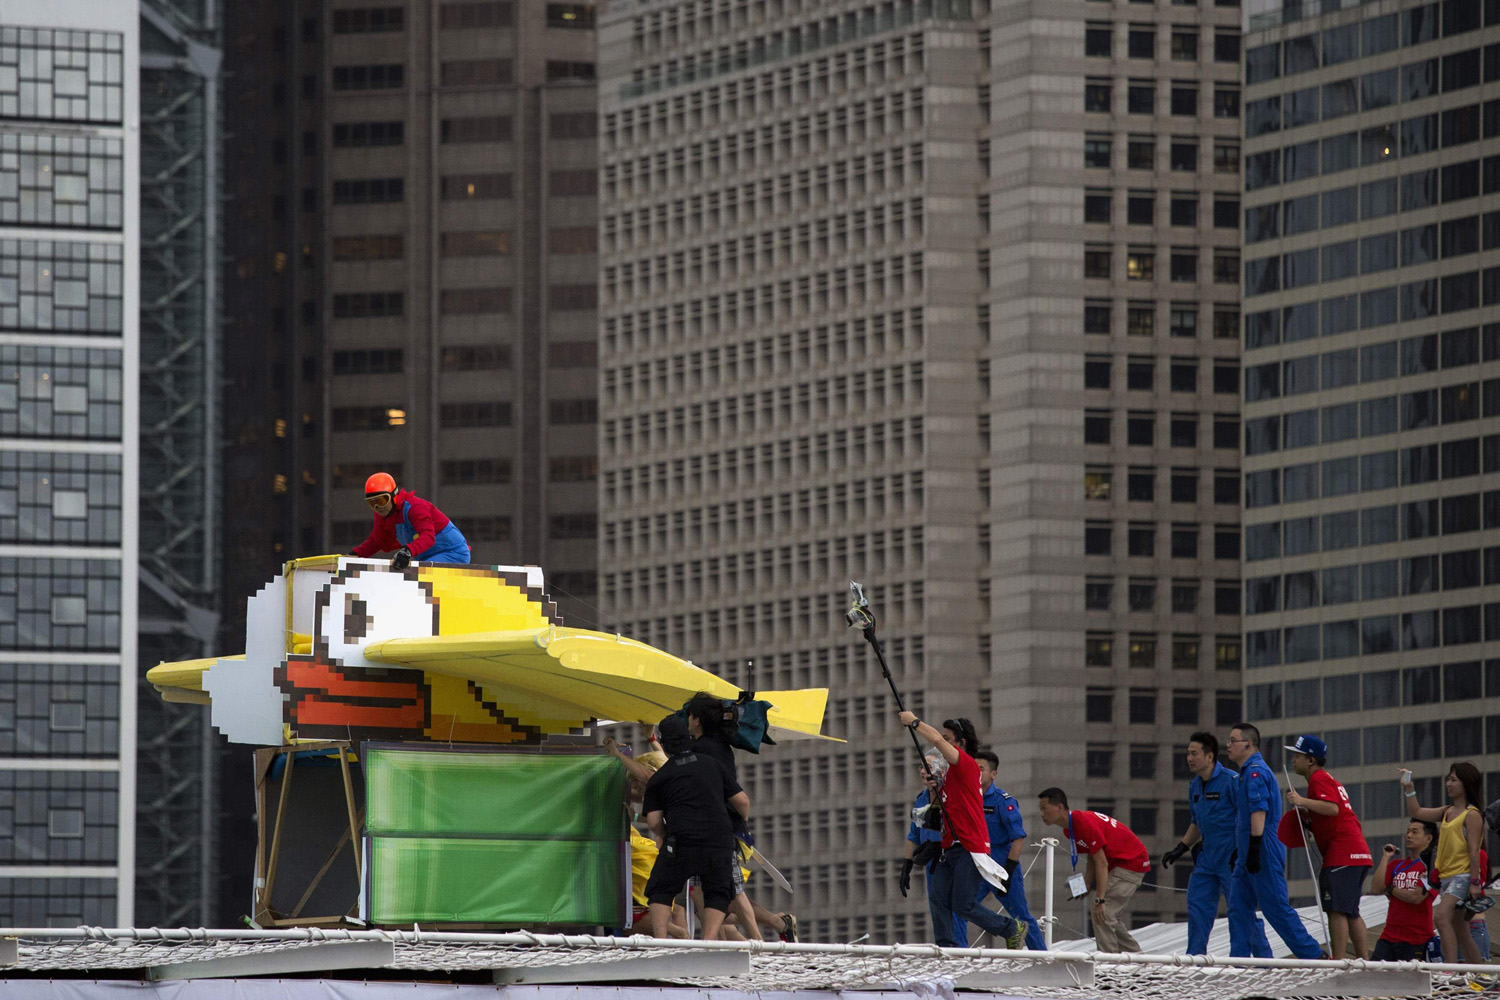 A participant operates the  Flappy Bird , a self-made flying machine, during the Red Bull Flugtag event at Hong Kong's financial Central district May 11, 2014.